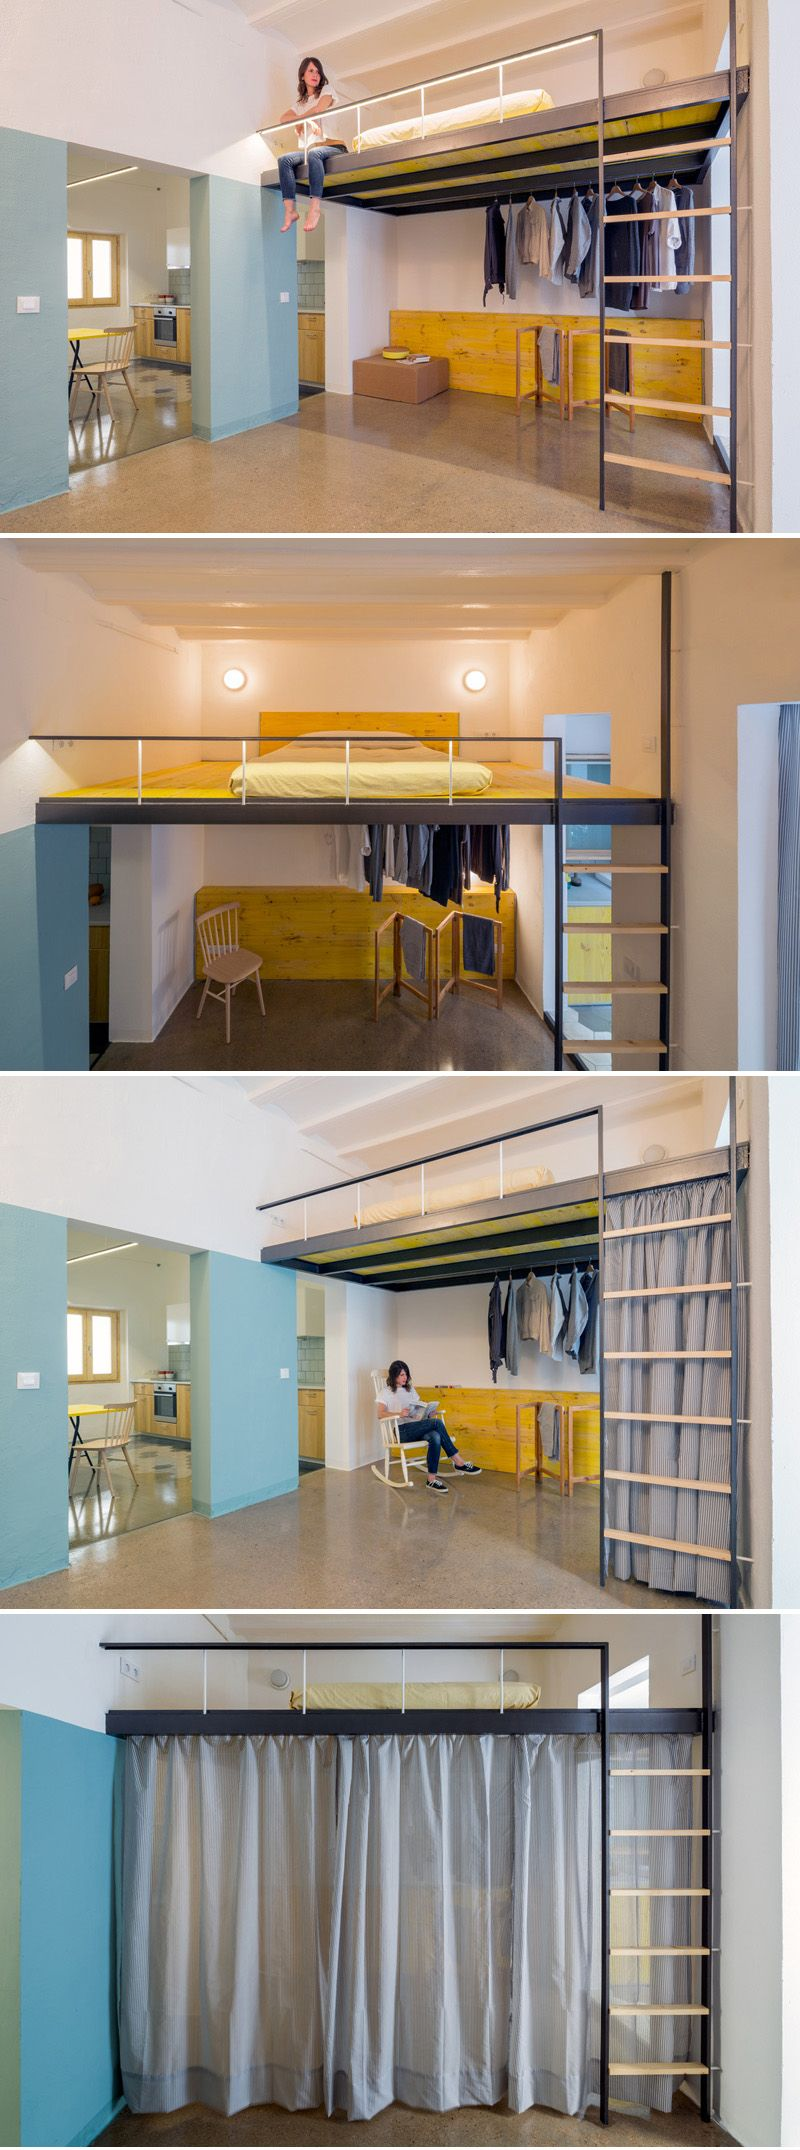 Nookarchitects design the interior of a loft apartment in for Wohnideen studentenzimmer